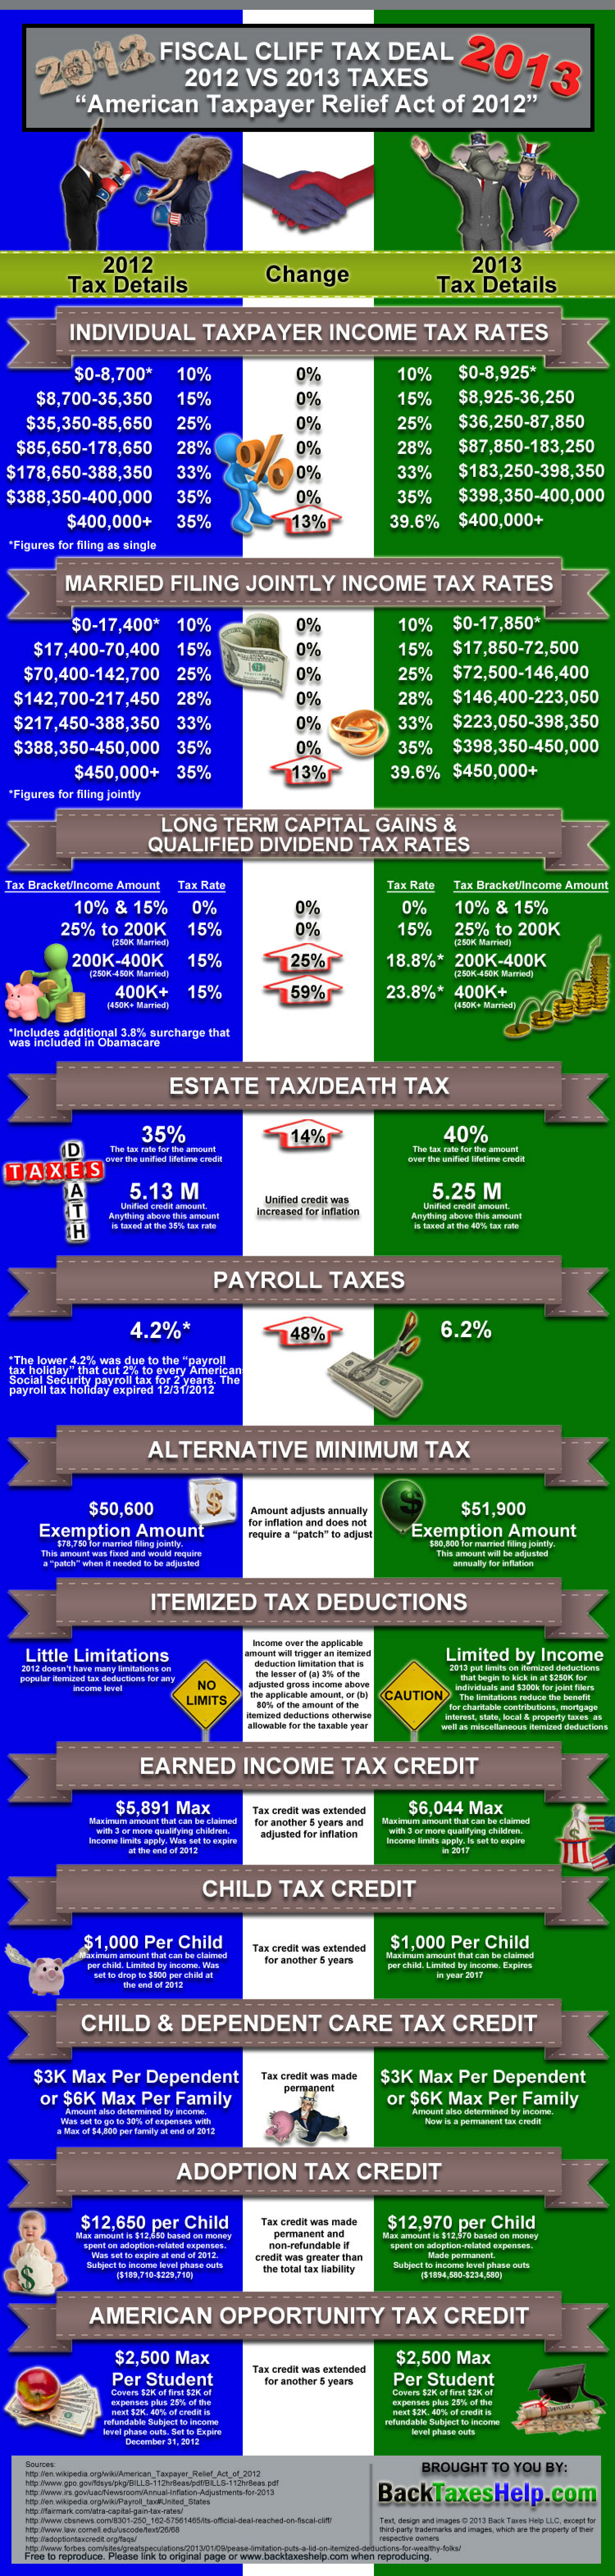 American Taxpayer Relief Act of 2012 Tax Changes Infographic